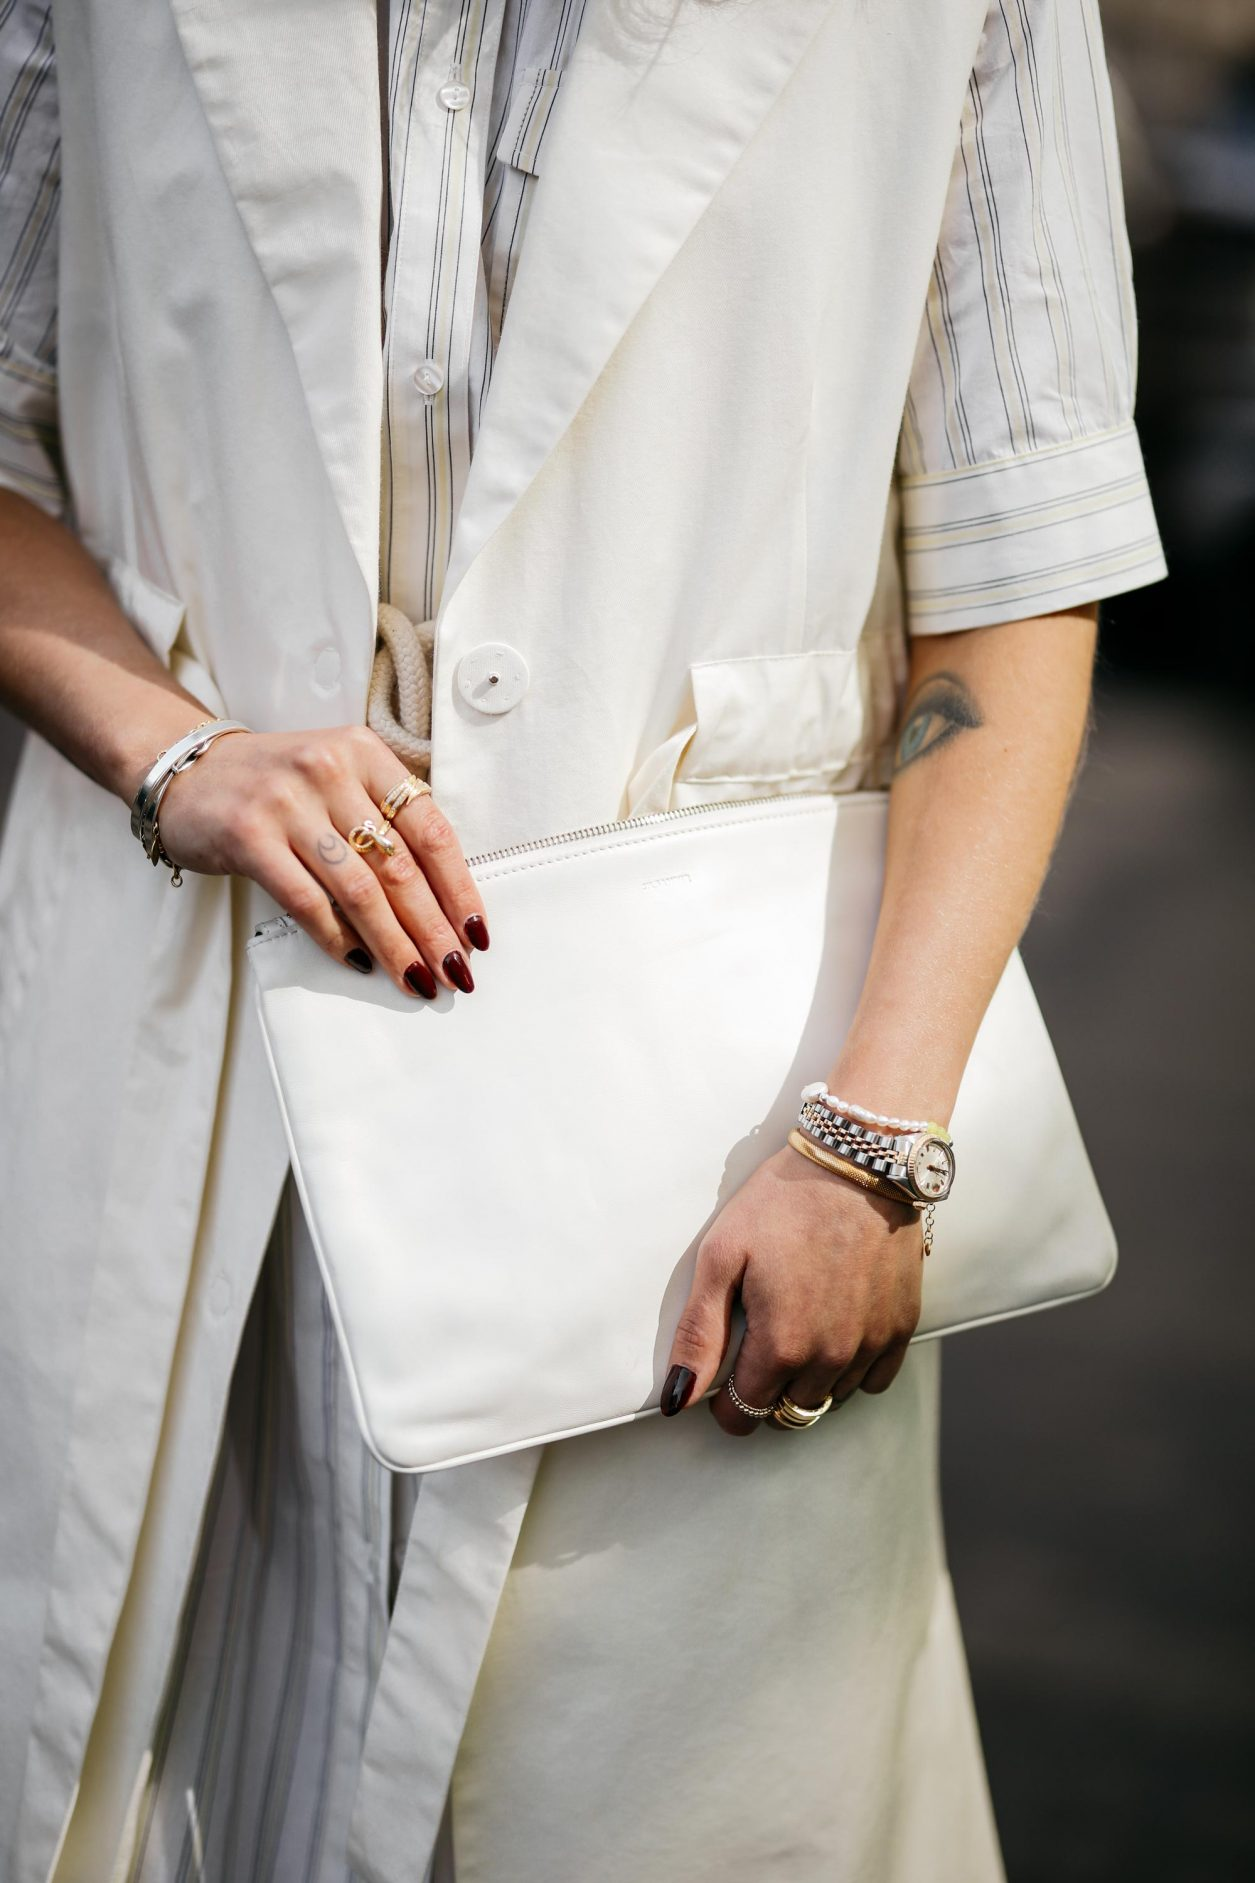 Anzeige | Summer Streetstyle Outfit details by Berlin fashion blogger Masha Sedgwick wearing white blouse Baum und Pferdgarten dress, white Nobi Talai maxi west, white leather Jillion's Sander envelope bag, white sunglasses | Photos by Jeremy Moeller